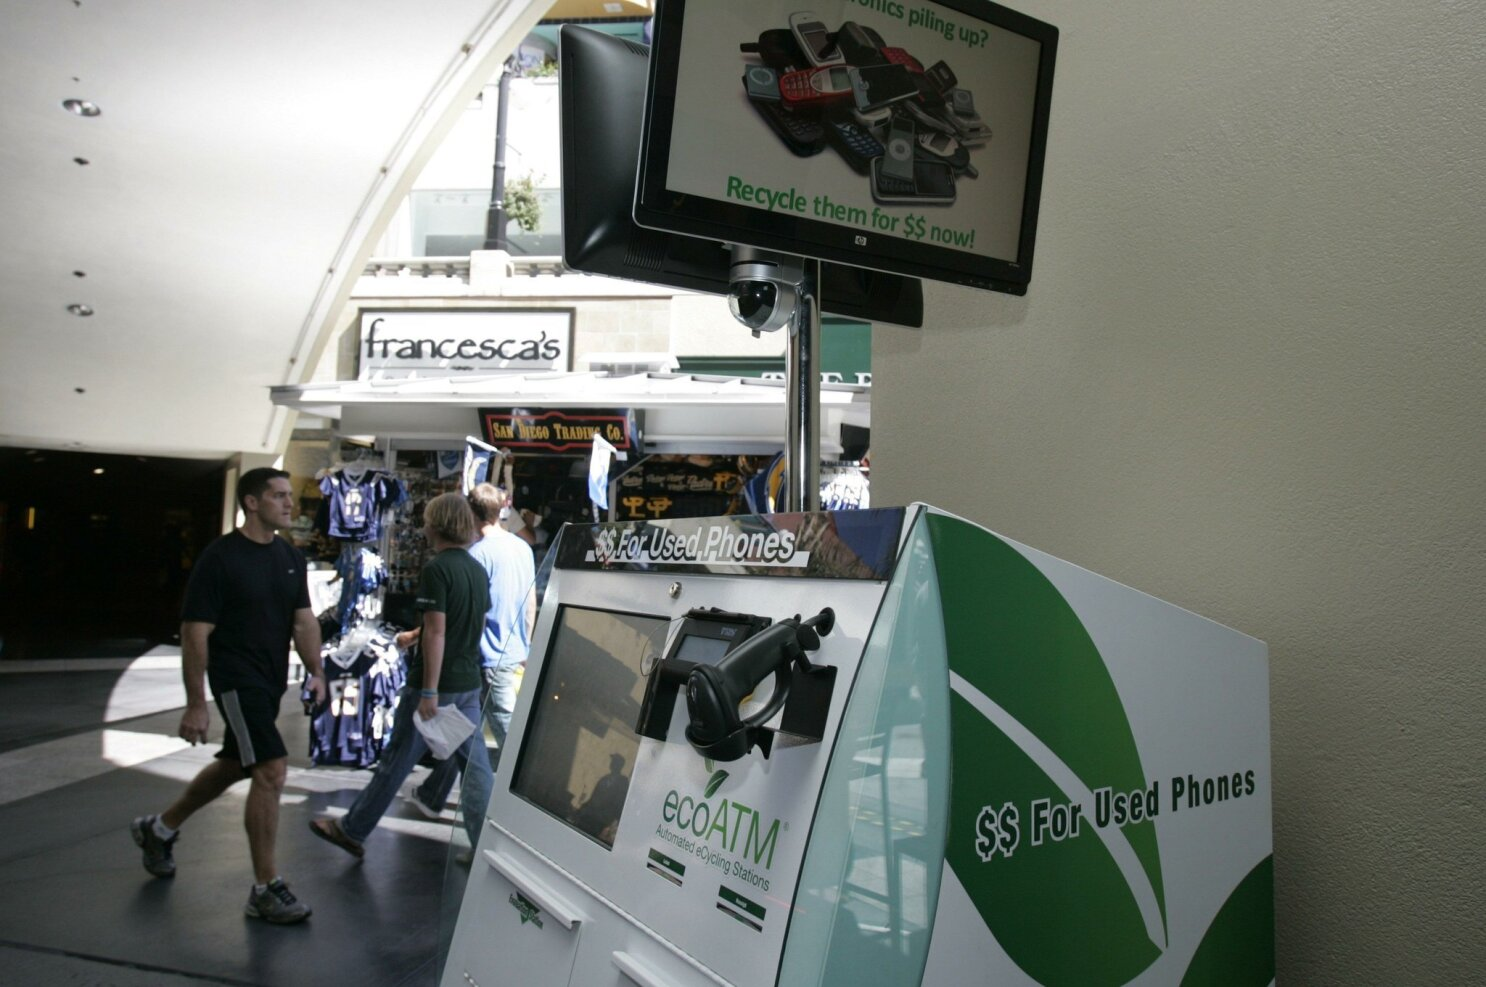 Parent of ecoATM lays off workers in San Diego - The San Diego Union